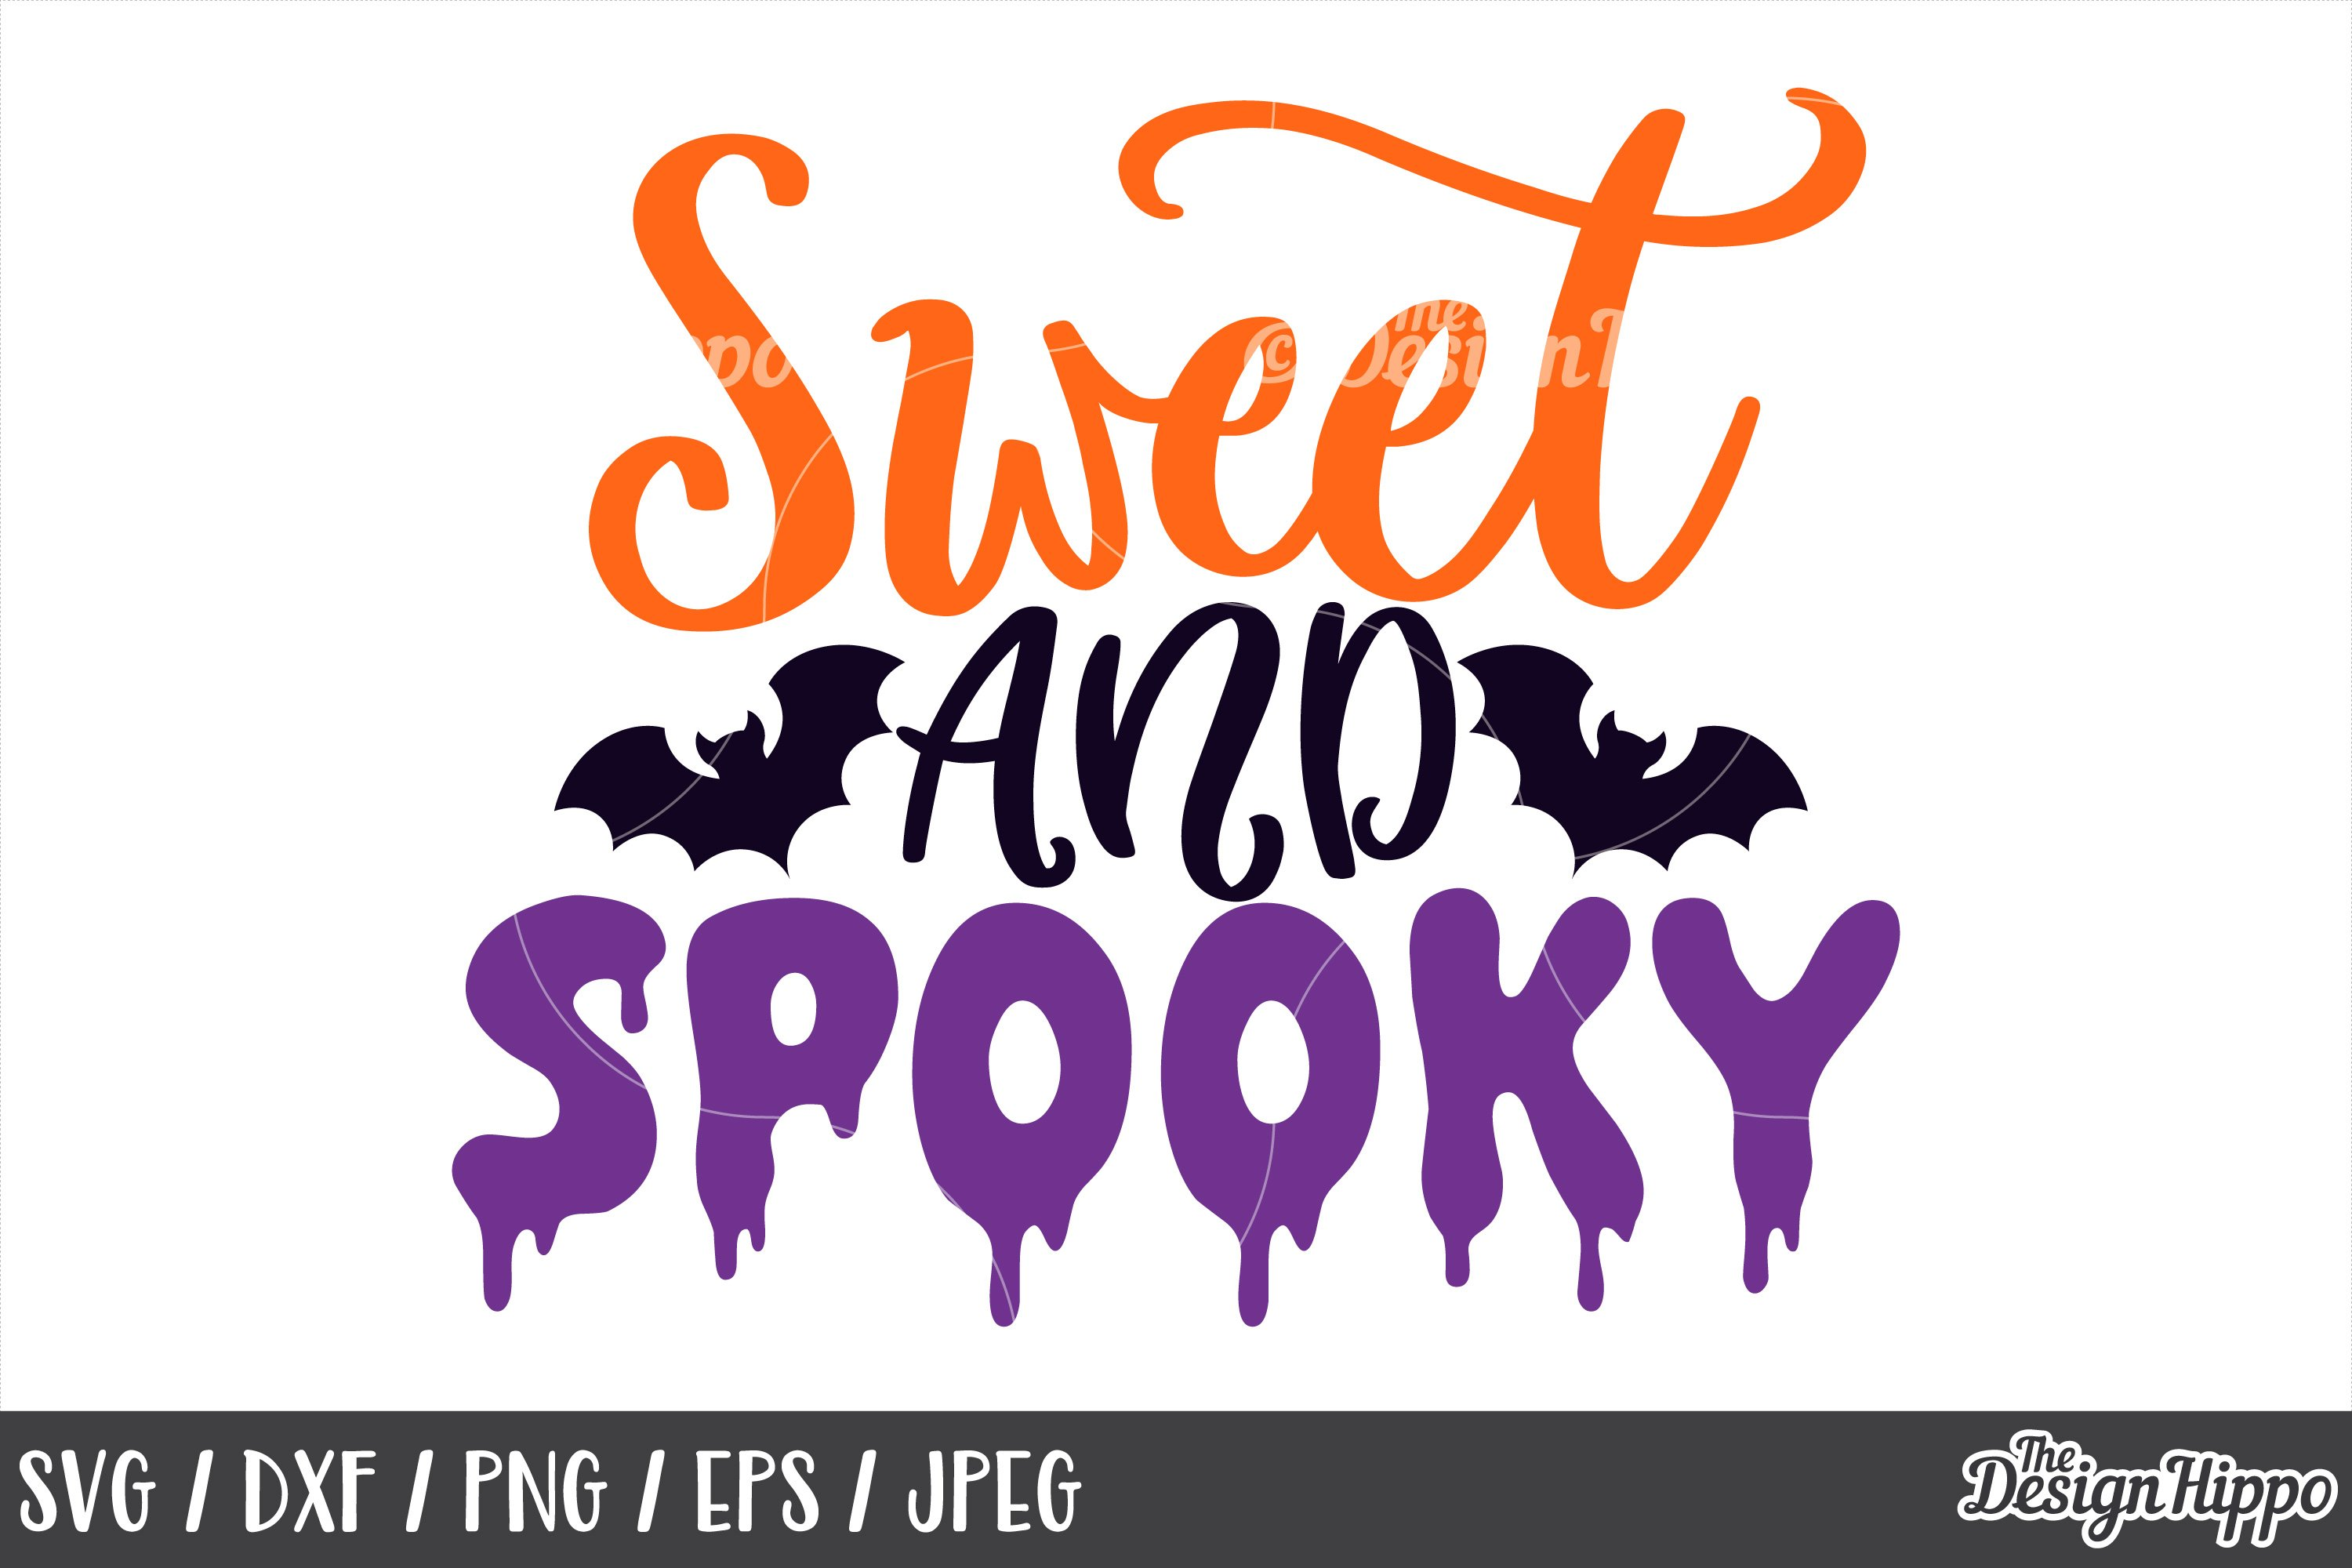 Halloween Design Halloween Cut File May Your Days Be Scary and Bright Bat Wreath Design Bats SVG Halloween Quote